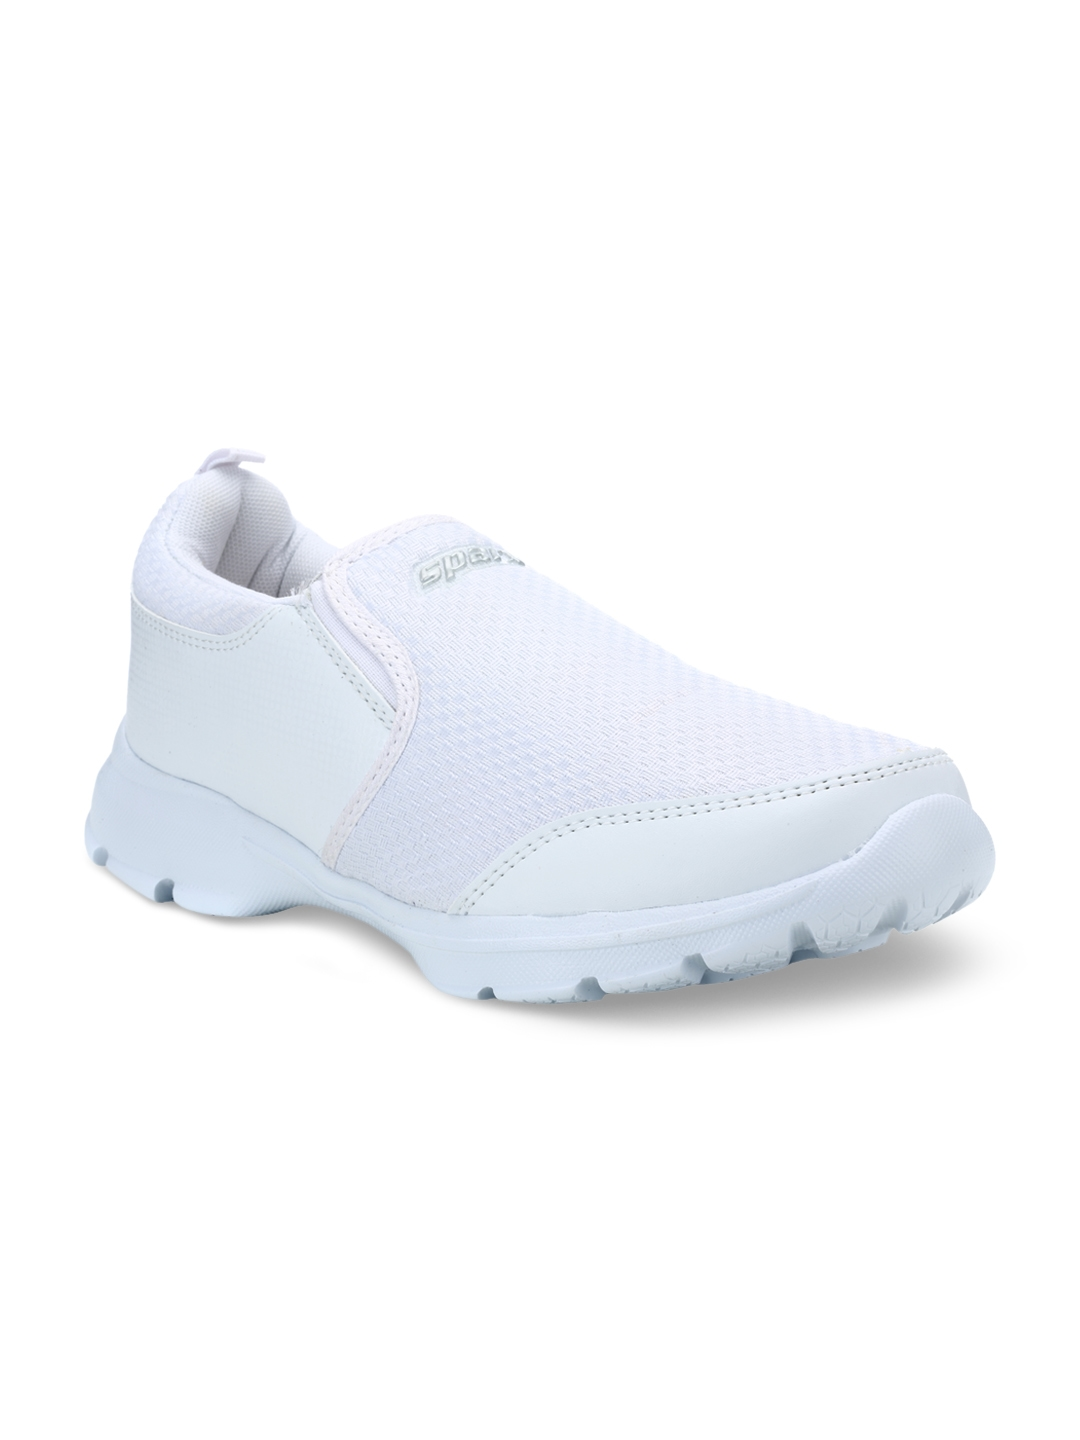 b0b234561f Buy Sparx Men White Sneakers - Casual Shoes for Men 2334785